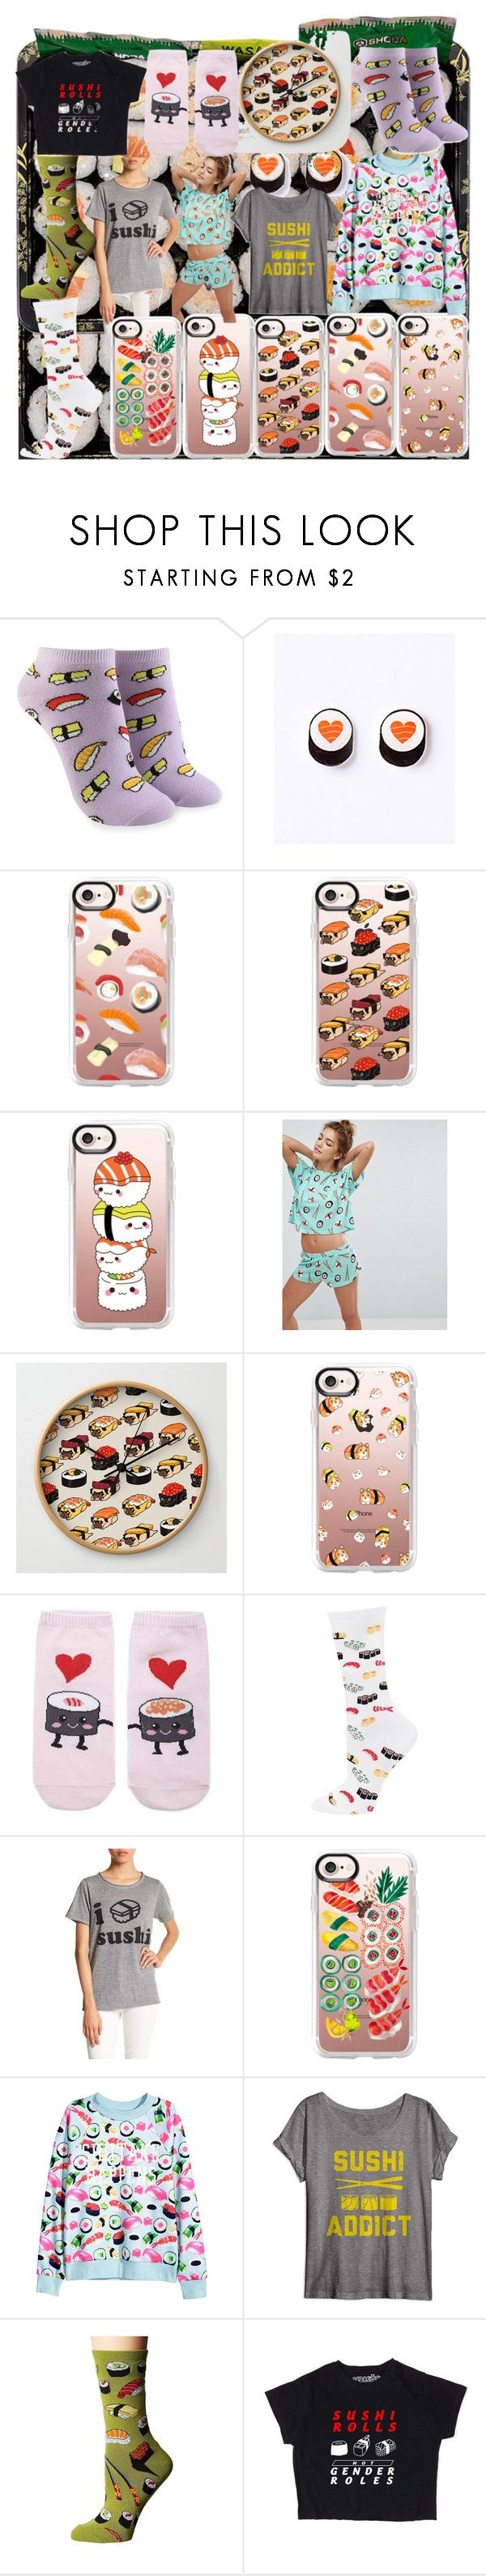 """""""Sushi collection"""" by andieok on Polyvore featuring Forever 21, Casetify, ASOS, HOT SOX, Chaser, Socksmith and sushi"""